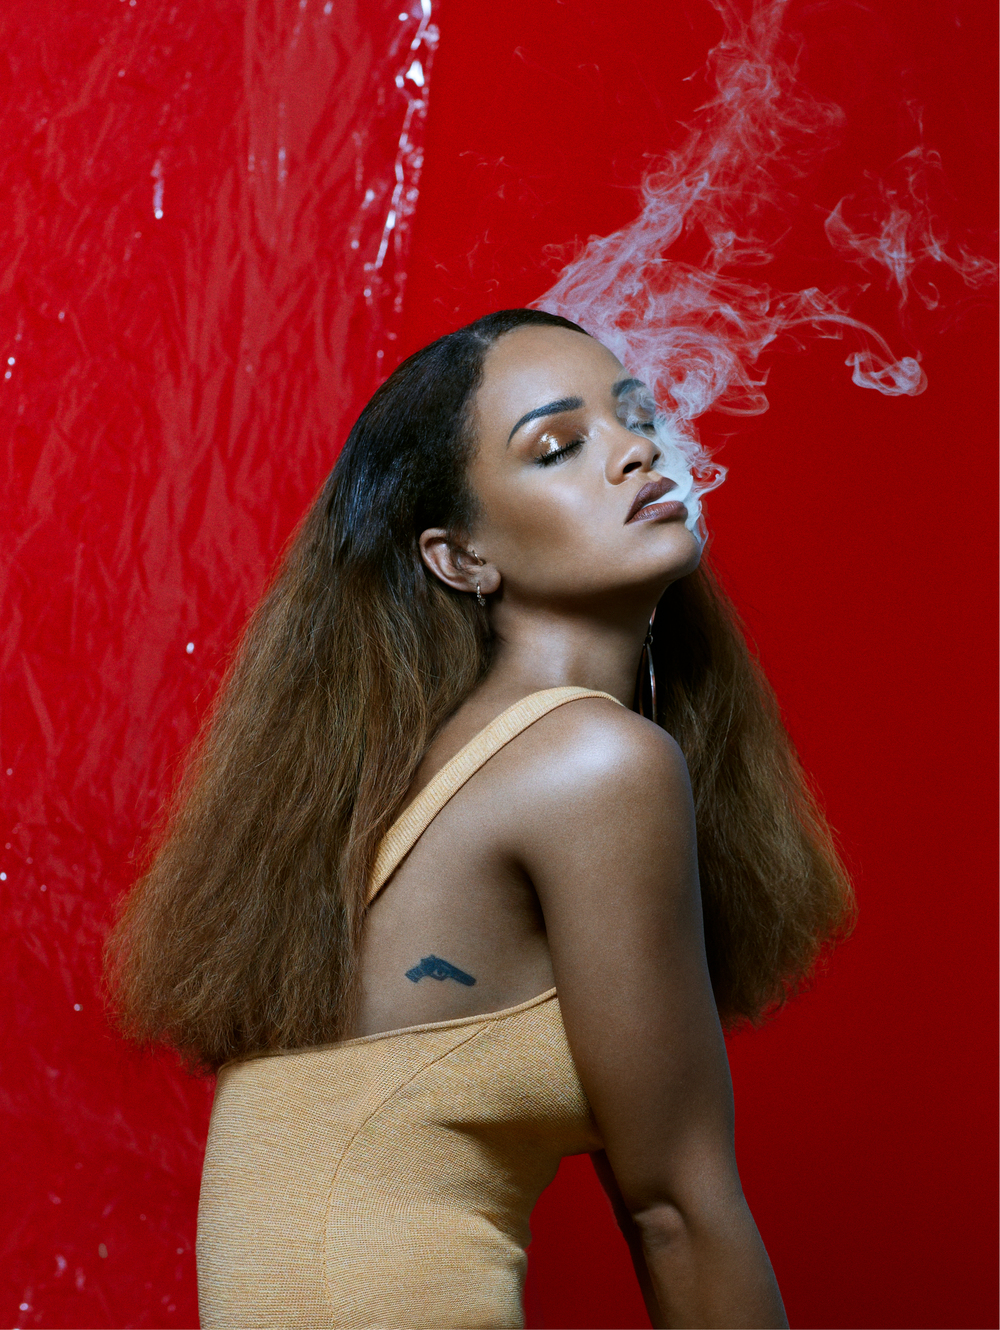 Rihanni-Feature-Updated Imagery-08.jpg